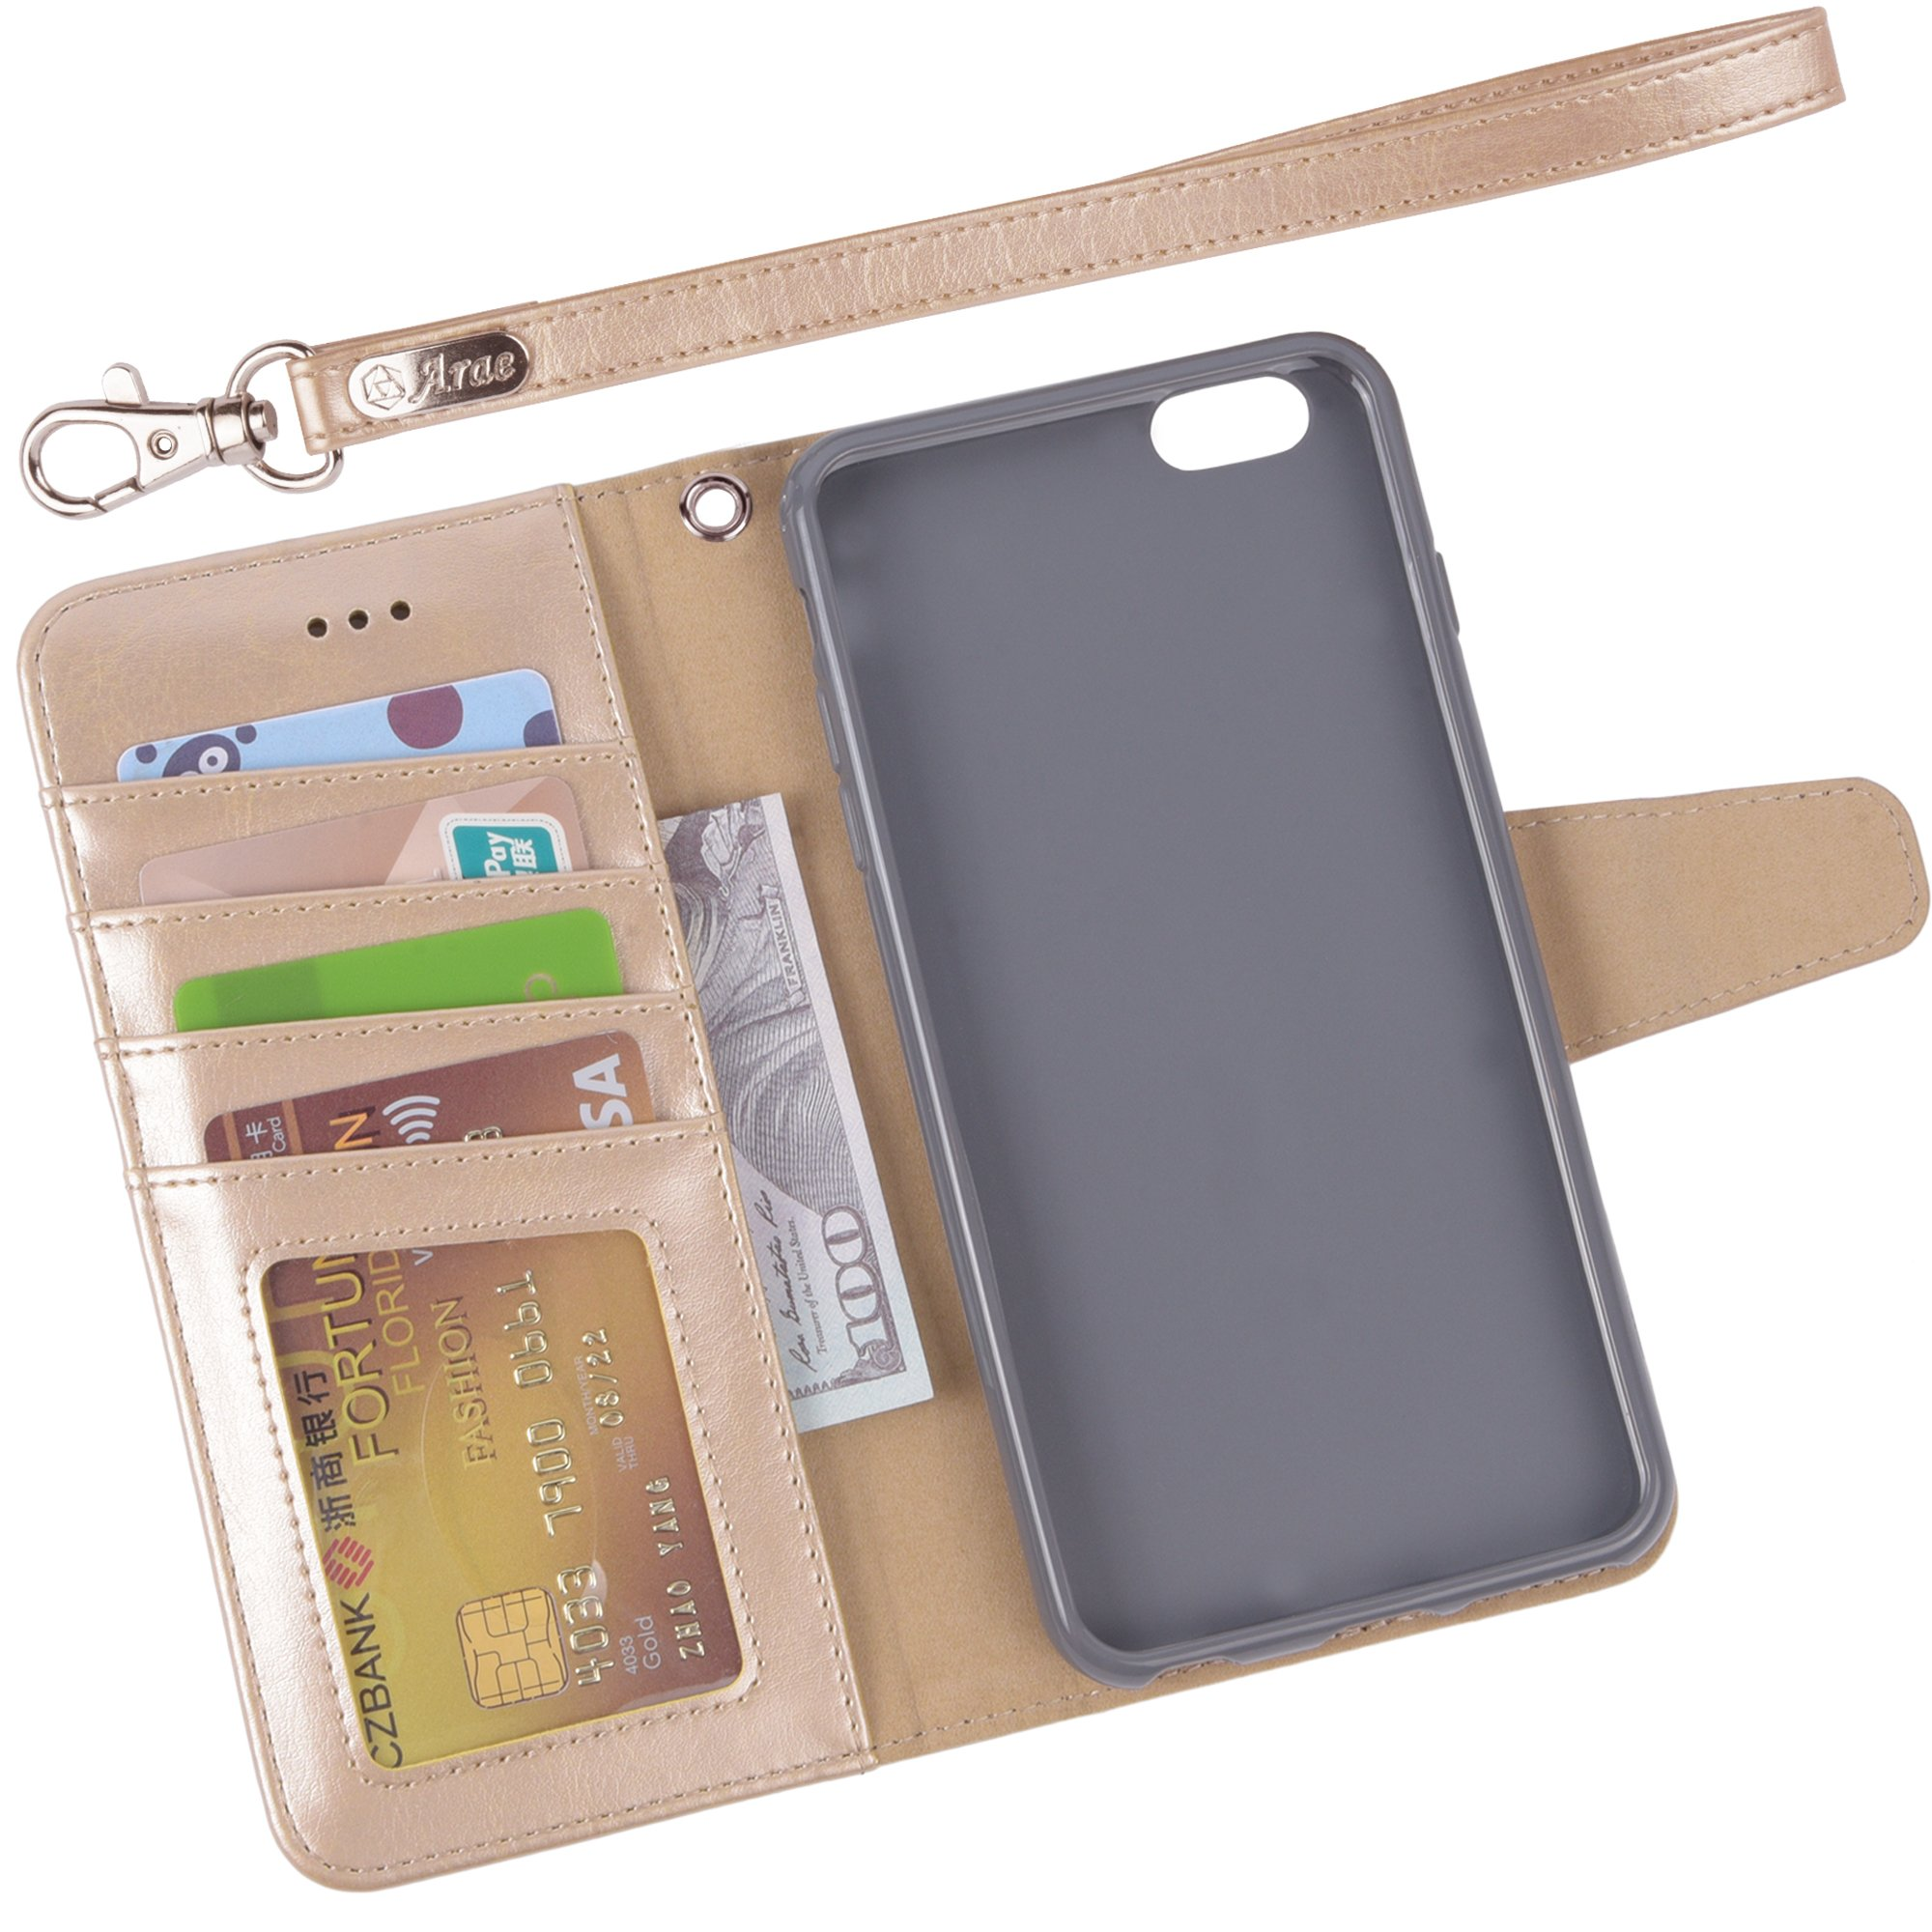 Iphone 6s Plus Case, iphone 6 plus case, Arae [Wrist Strap] Flip Folio [Kickstand Feature] PU leather wallet case with ID&Credit Card Pockets For Apple Iphone 6 plus/6S Plus 5.5 (champaign gold) by Arae (Image #3)